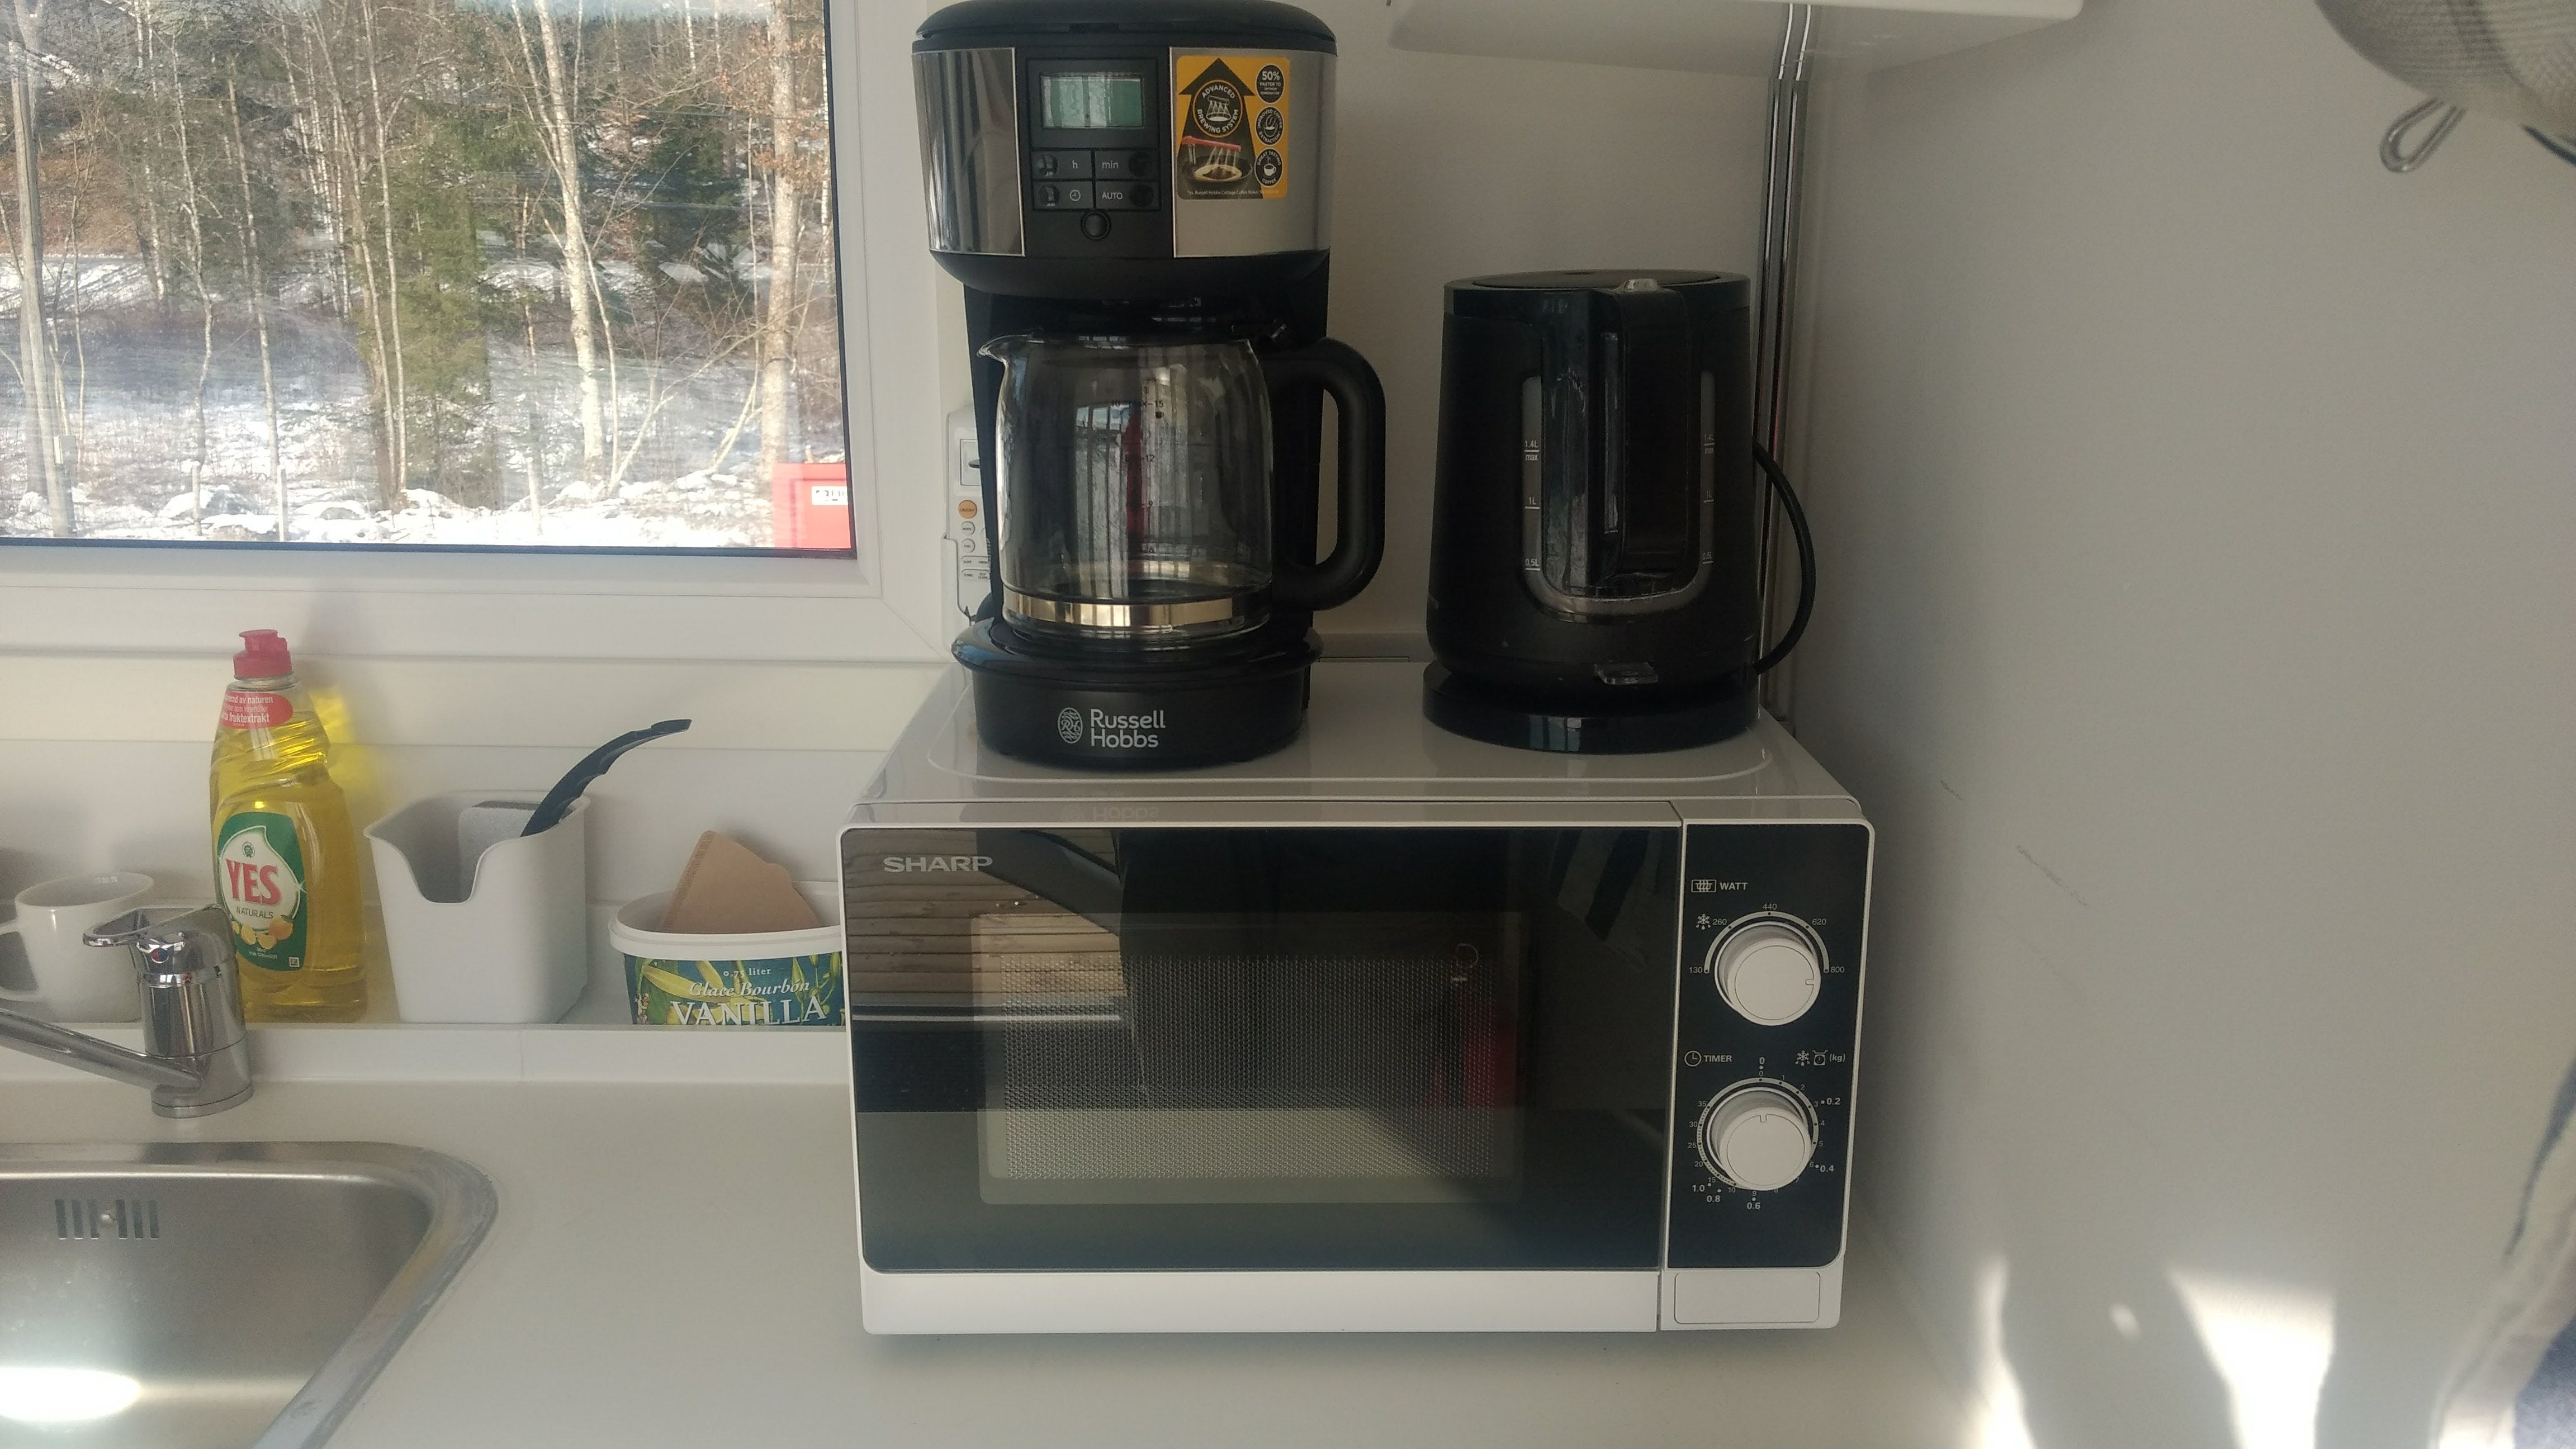 In kitchenette: micro-oven, fridge, hot-plate, watter boiler, coffee brewer, plates and cutlery, spices, etc